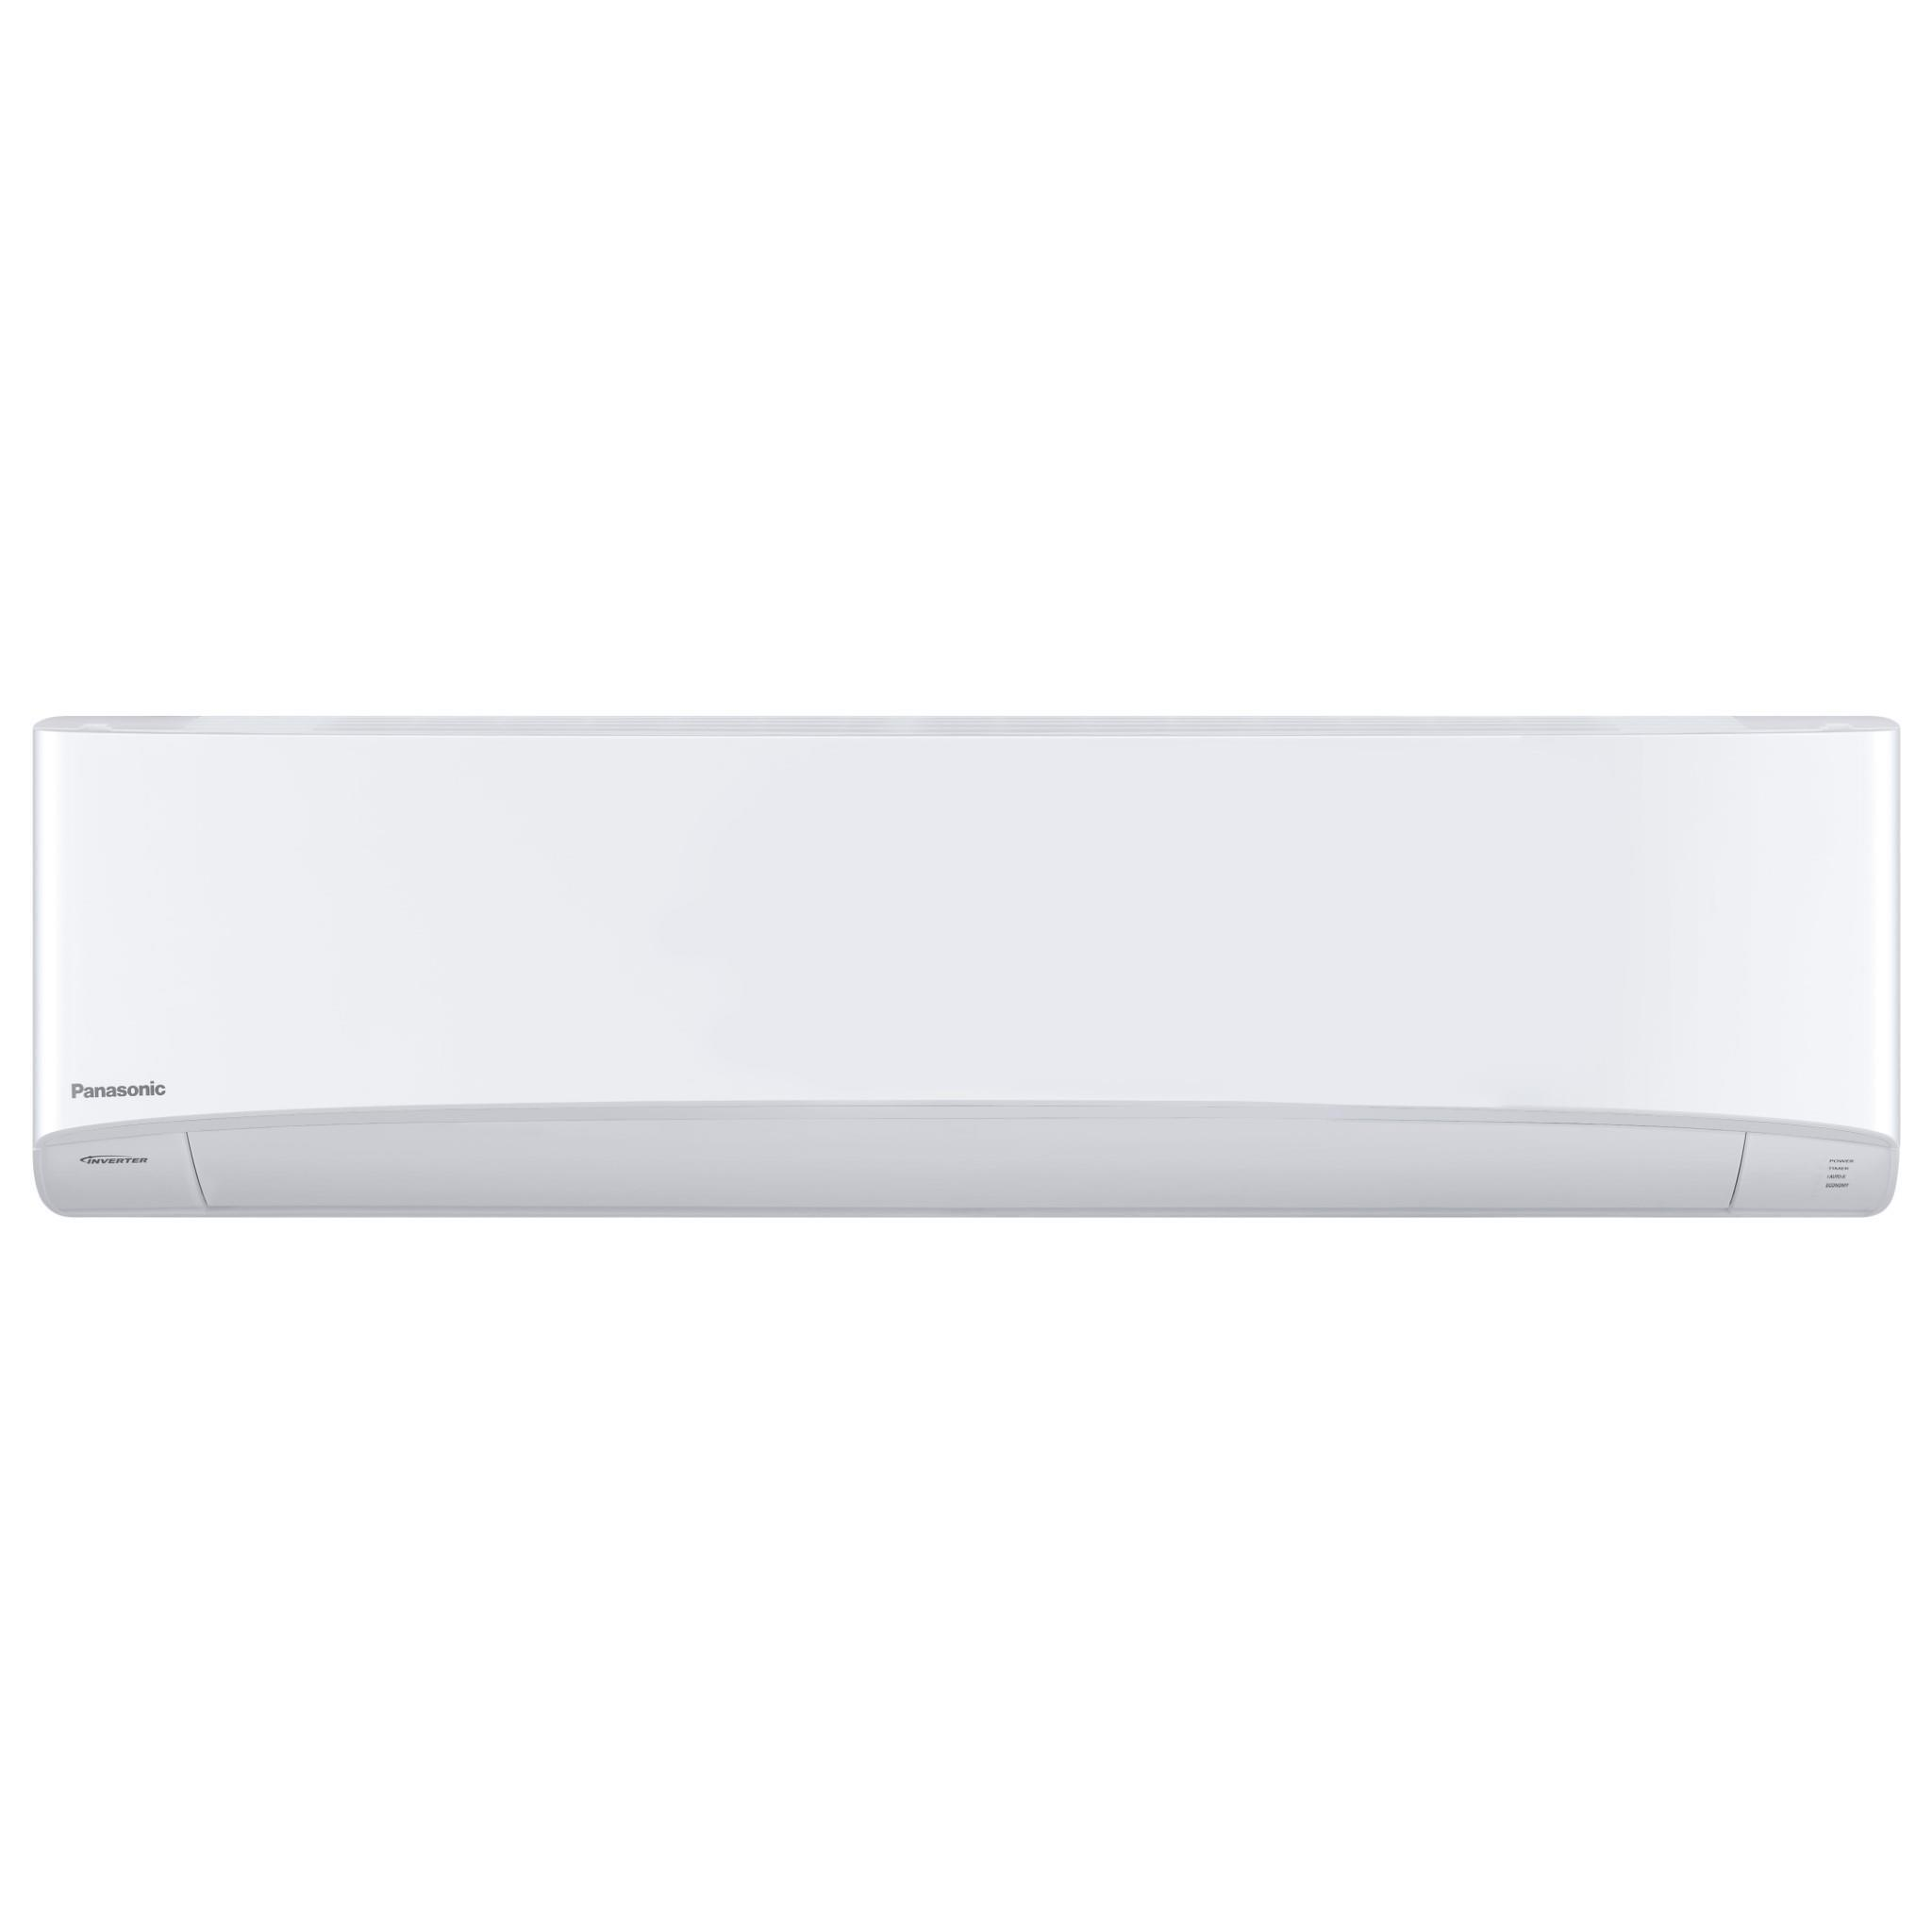 Panasonic 8.0kW Aero Cooling Only Air Conditioner